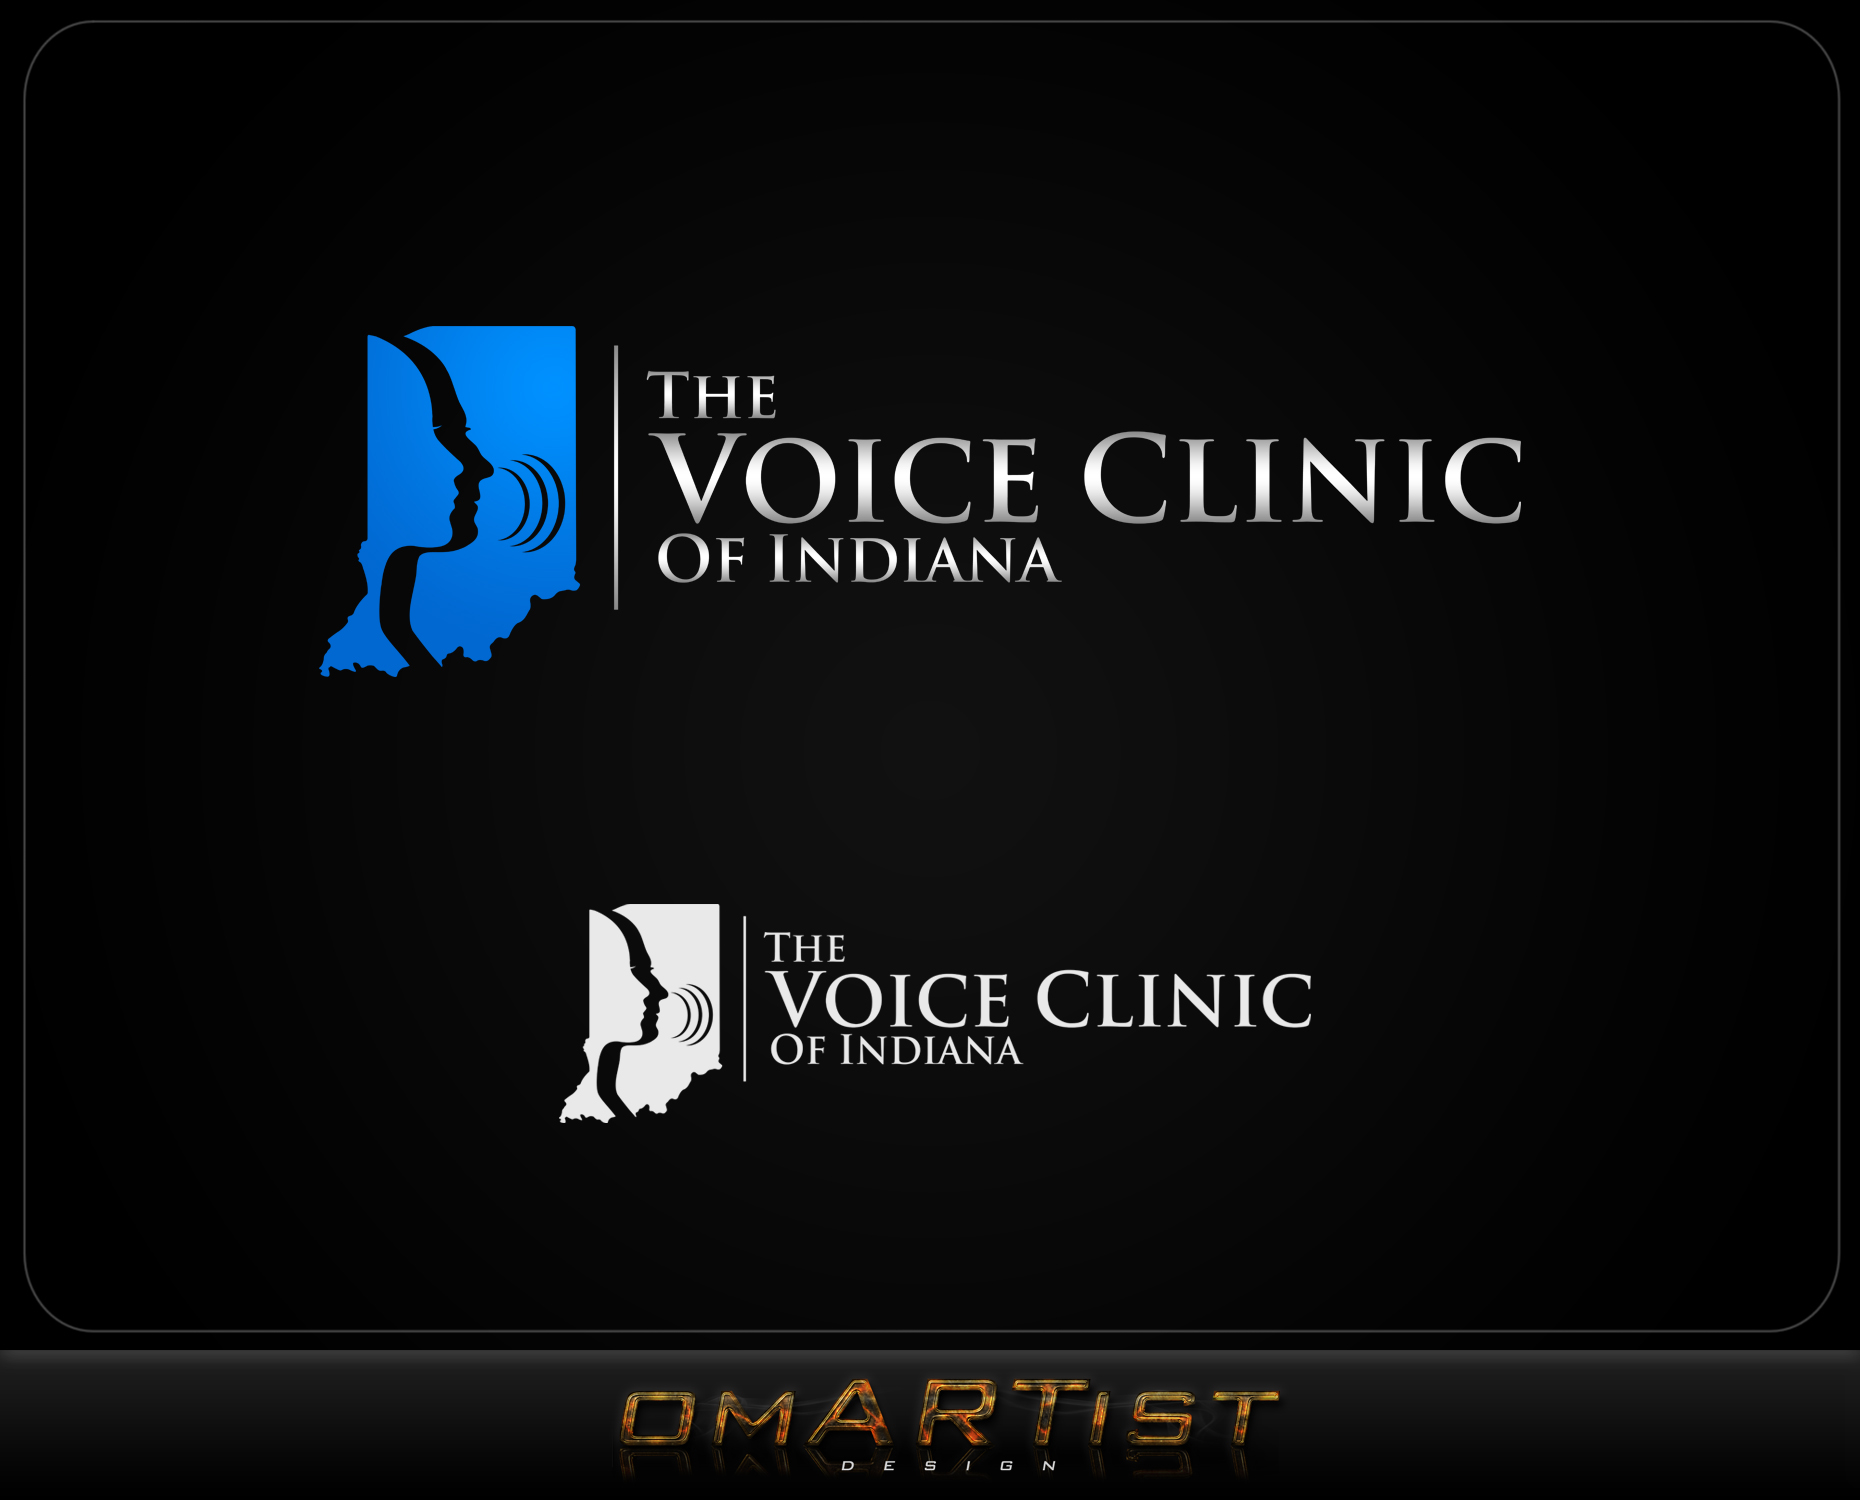 Logo Design by omARTist - Entry No. 4 in the Logo Design Contest Logo Design for The Voice Clinic of Indiana.